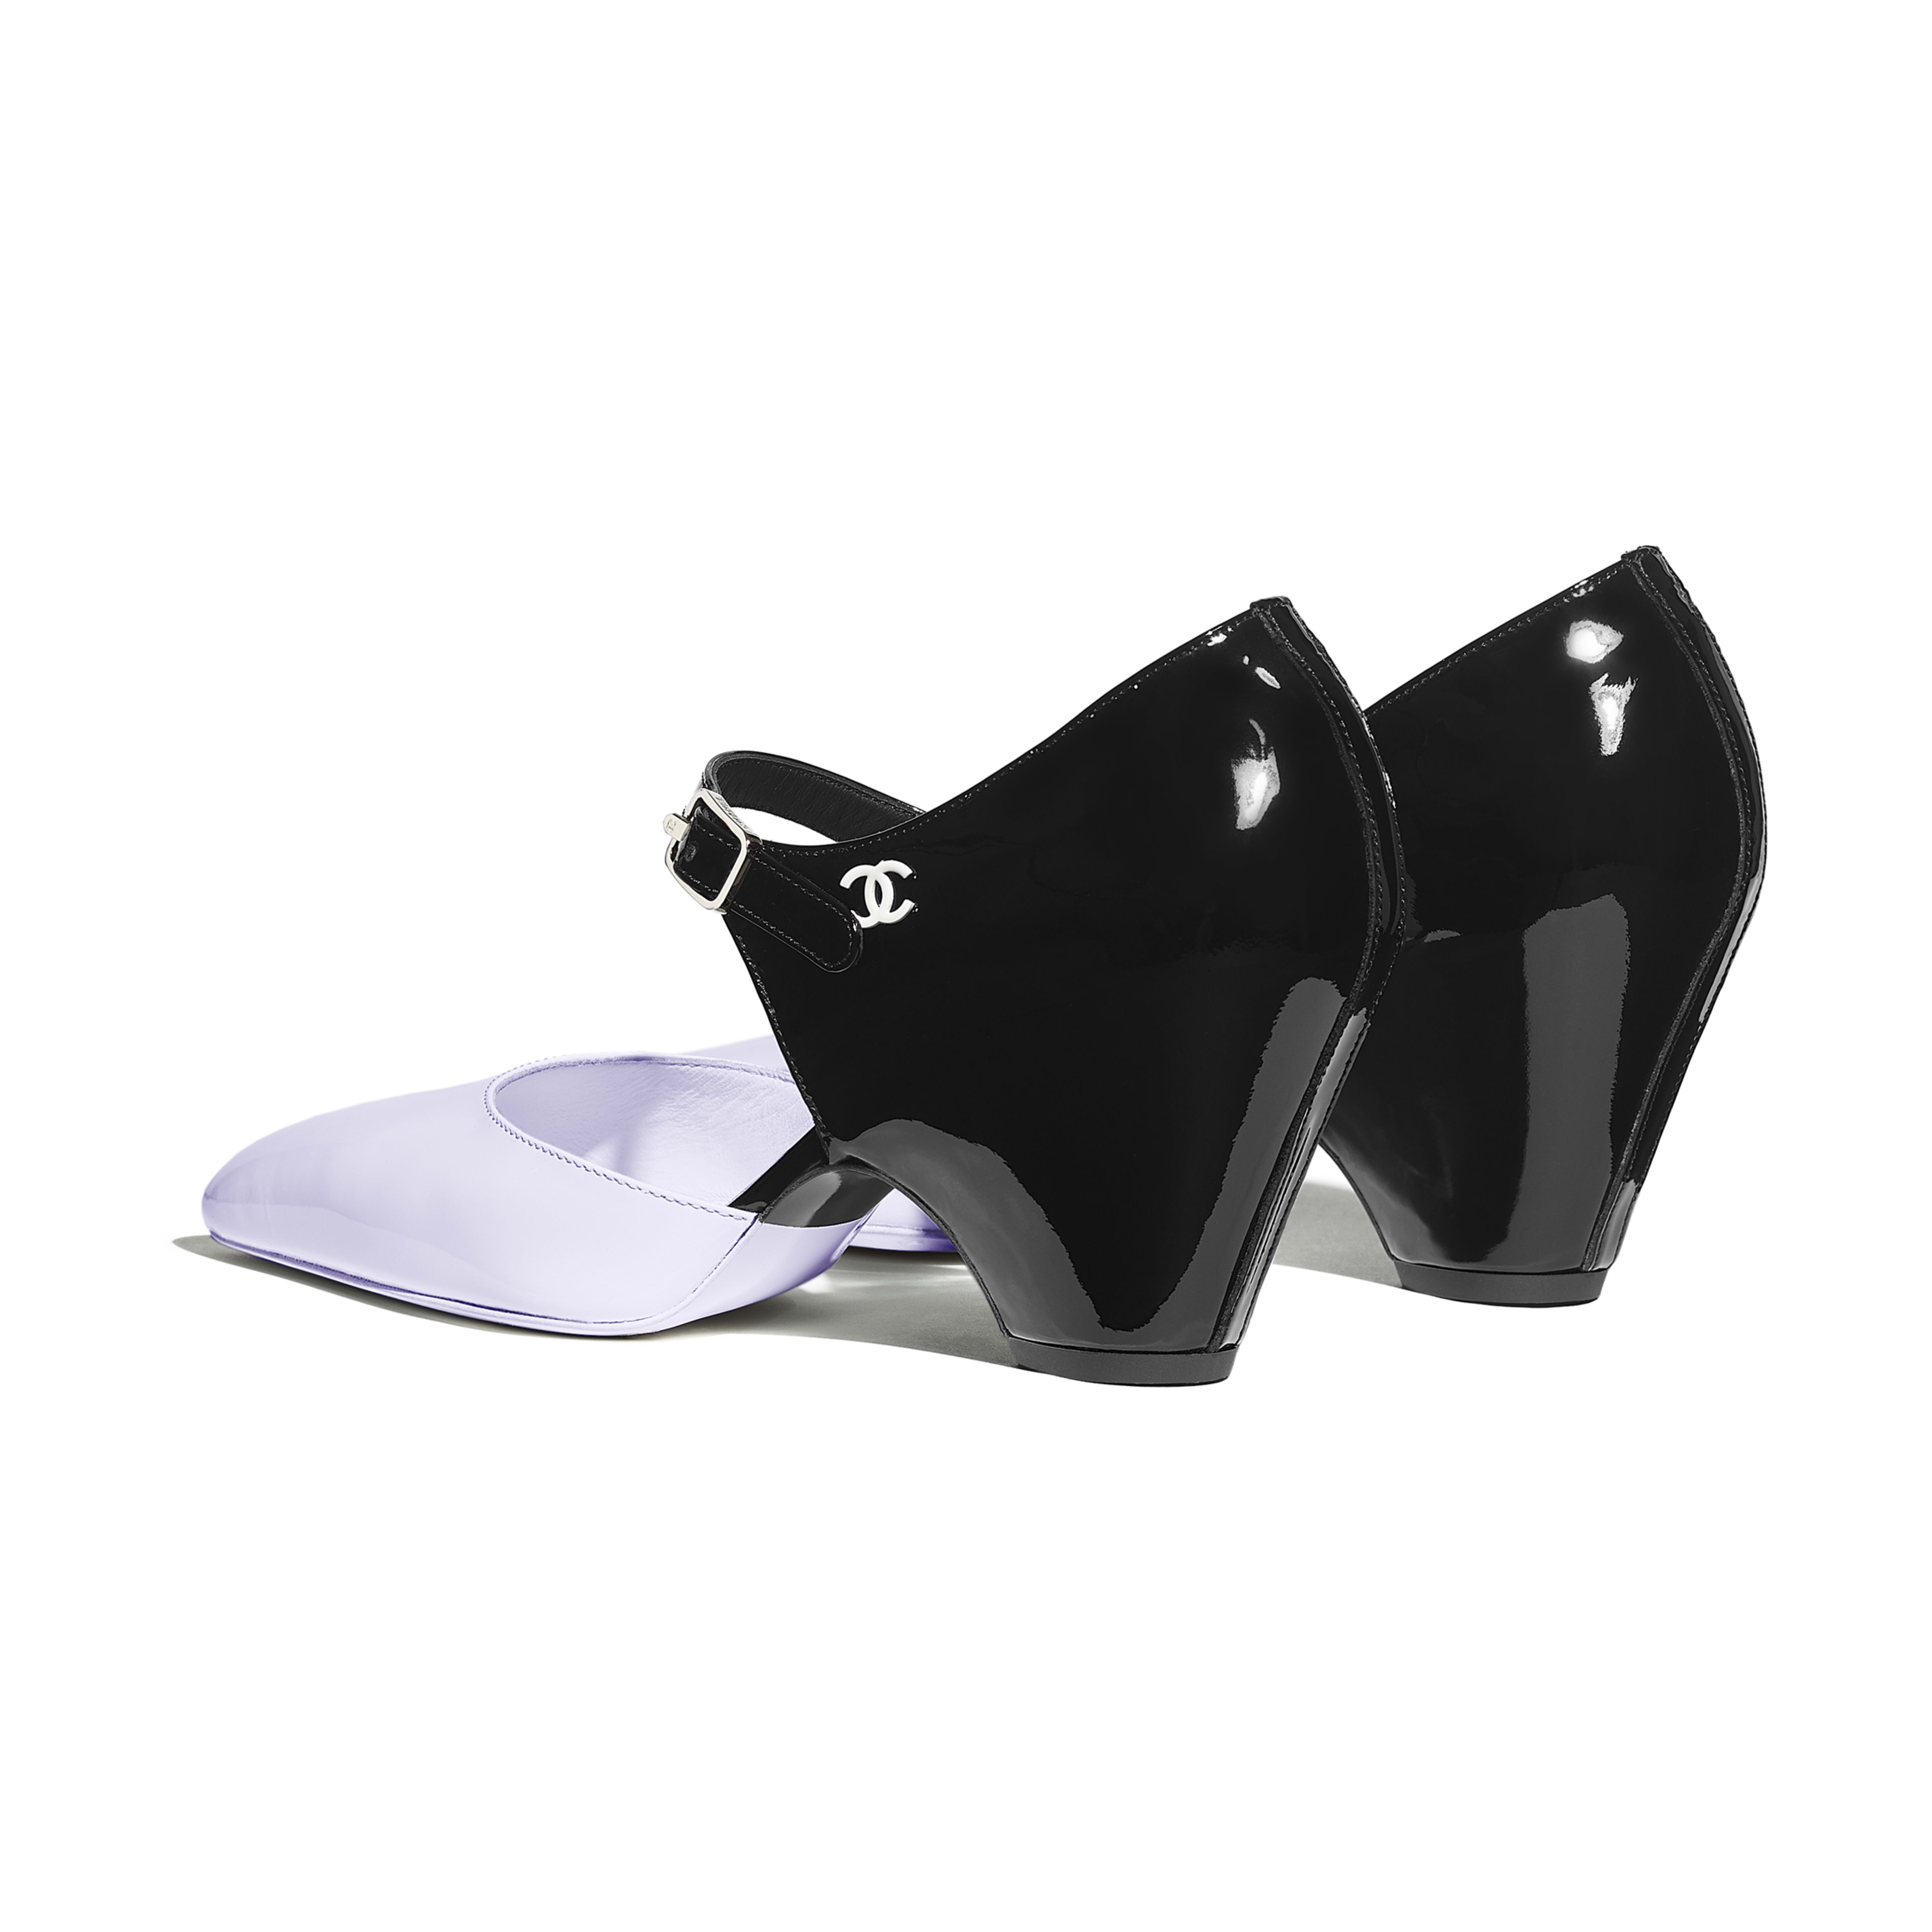 Pumps - Black & Purple - Patent Calfskin - Other view - see full sized version